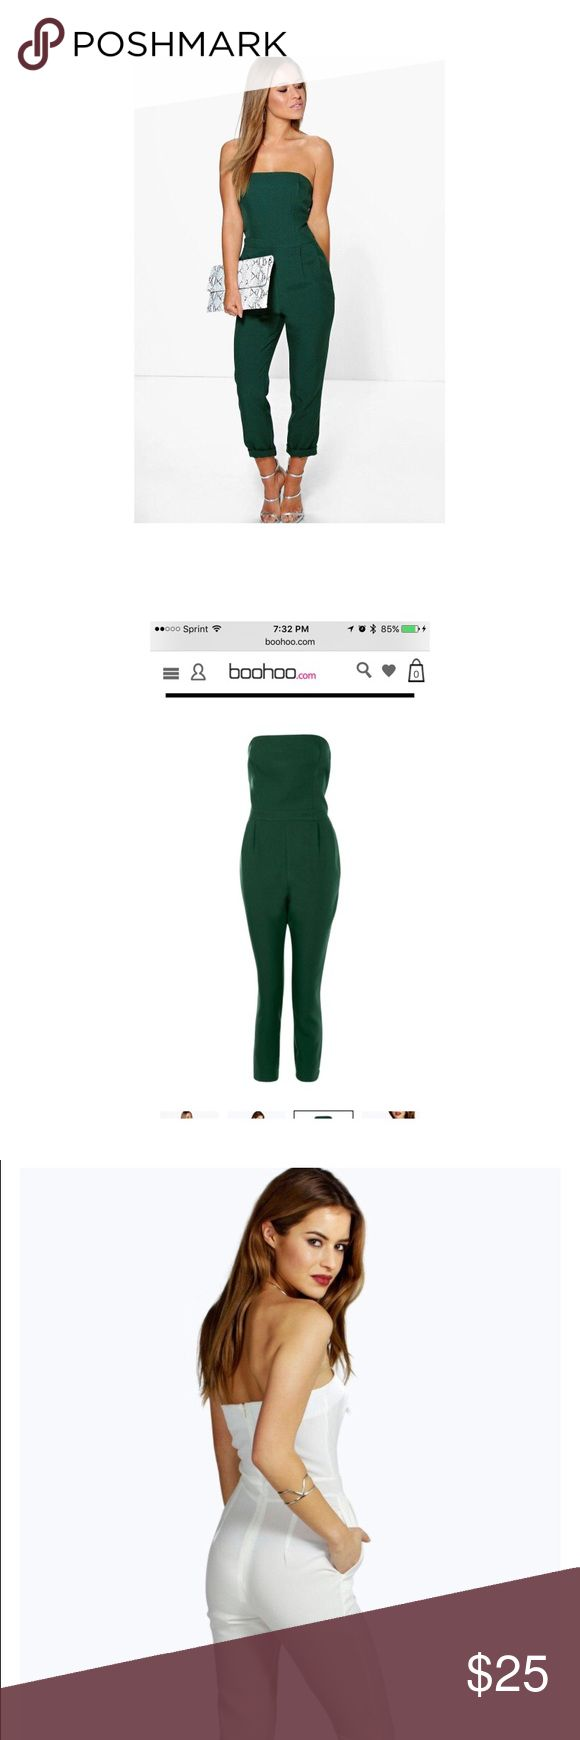 Bottle Green Playsuit/ Jumpsuit Never worn! I purchased the wrong size but I loved it so much that I went and purchased the correct size. From Boohoo (petite) will fit a size 2/4 not much stretch. My lost your gain Boohoo Petite Dresses Strapless